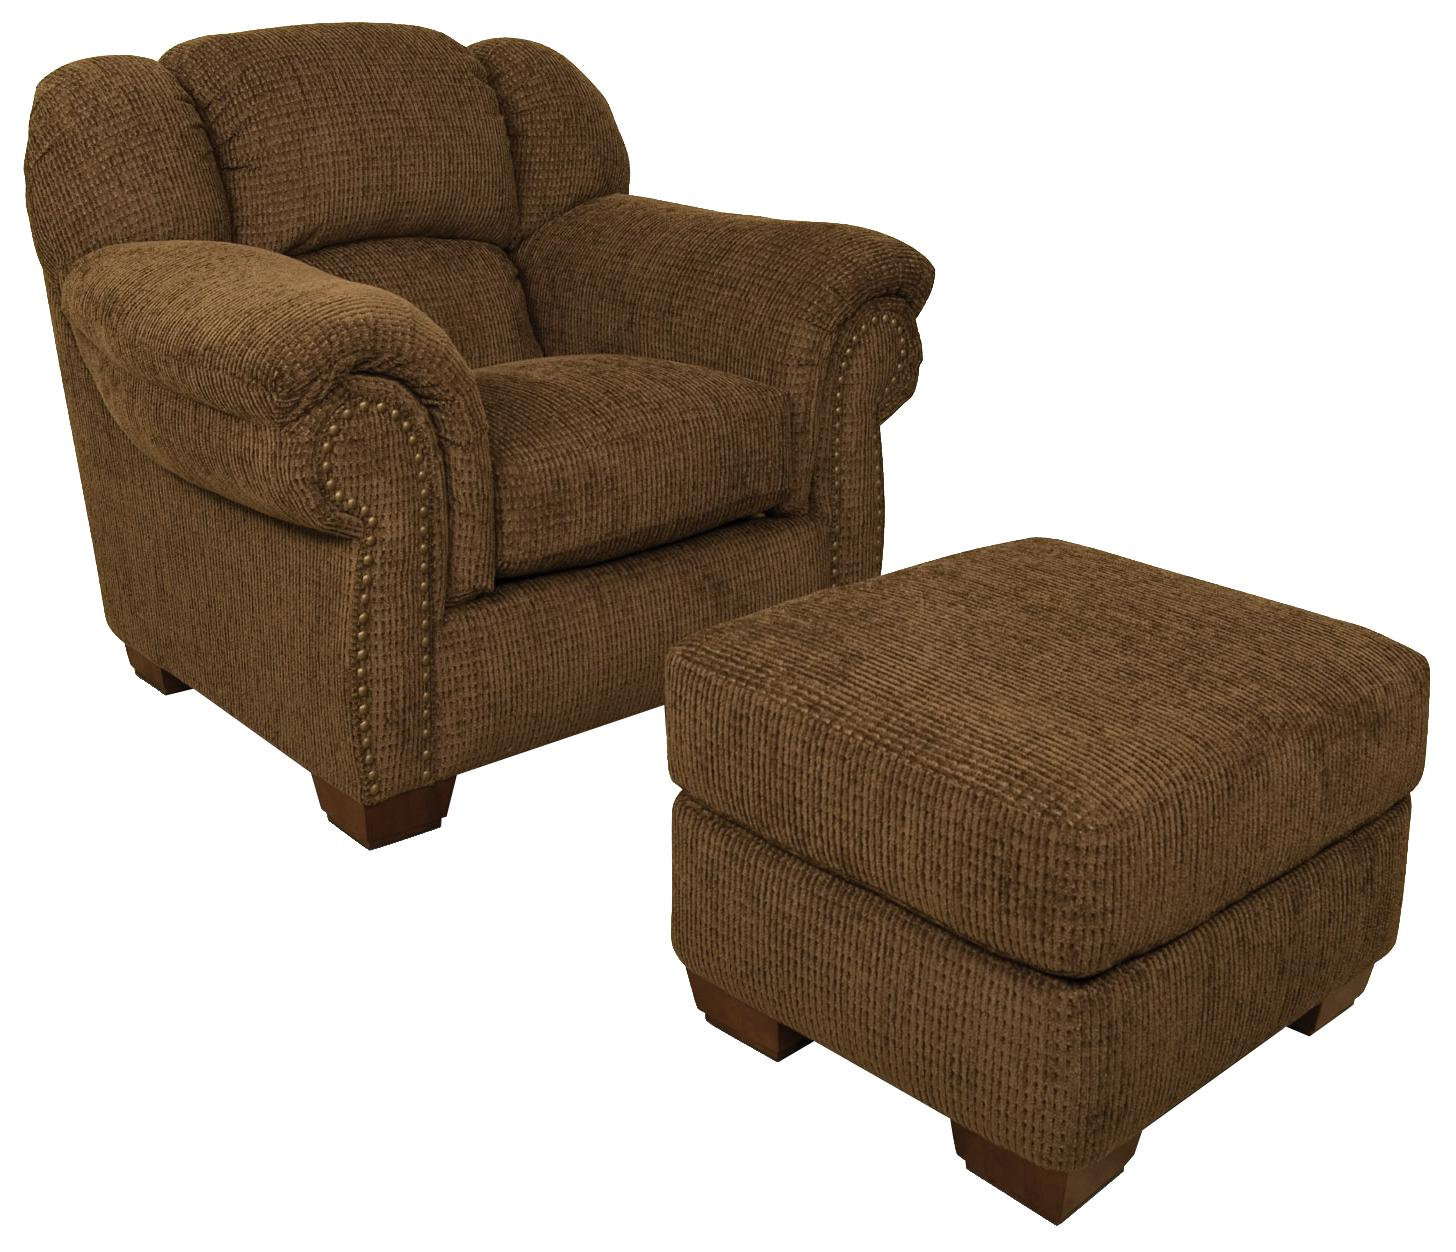 England Bryce Overstuffed Chair With Brass Tacks and